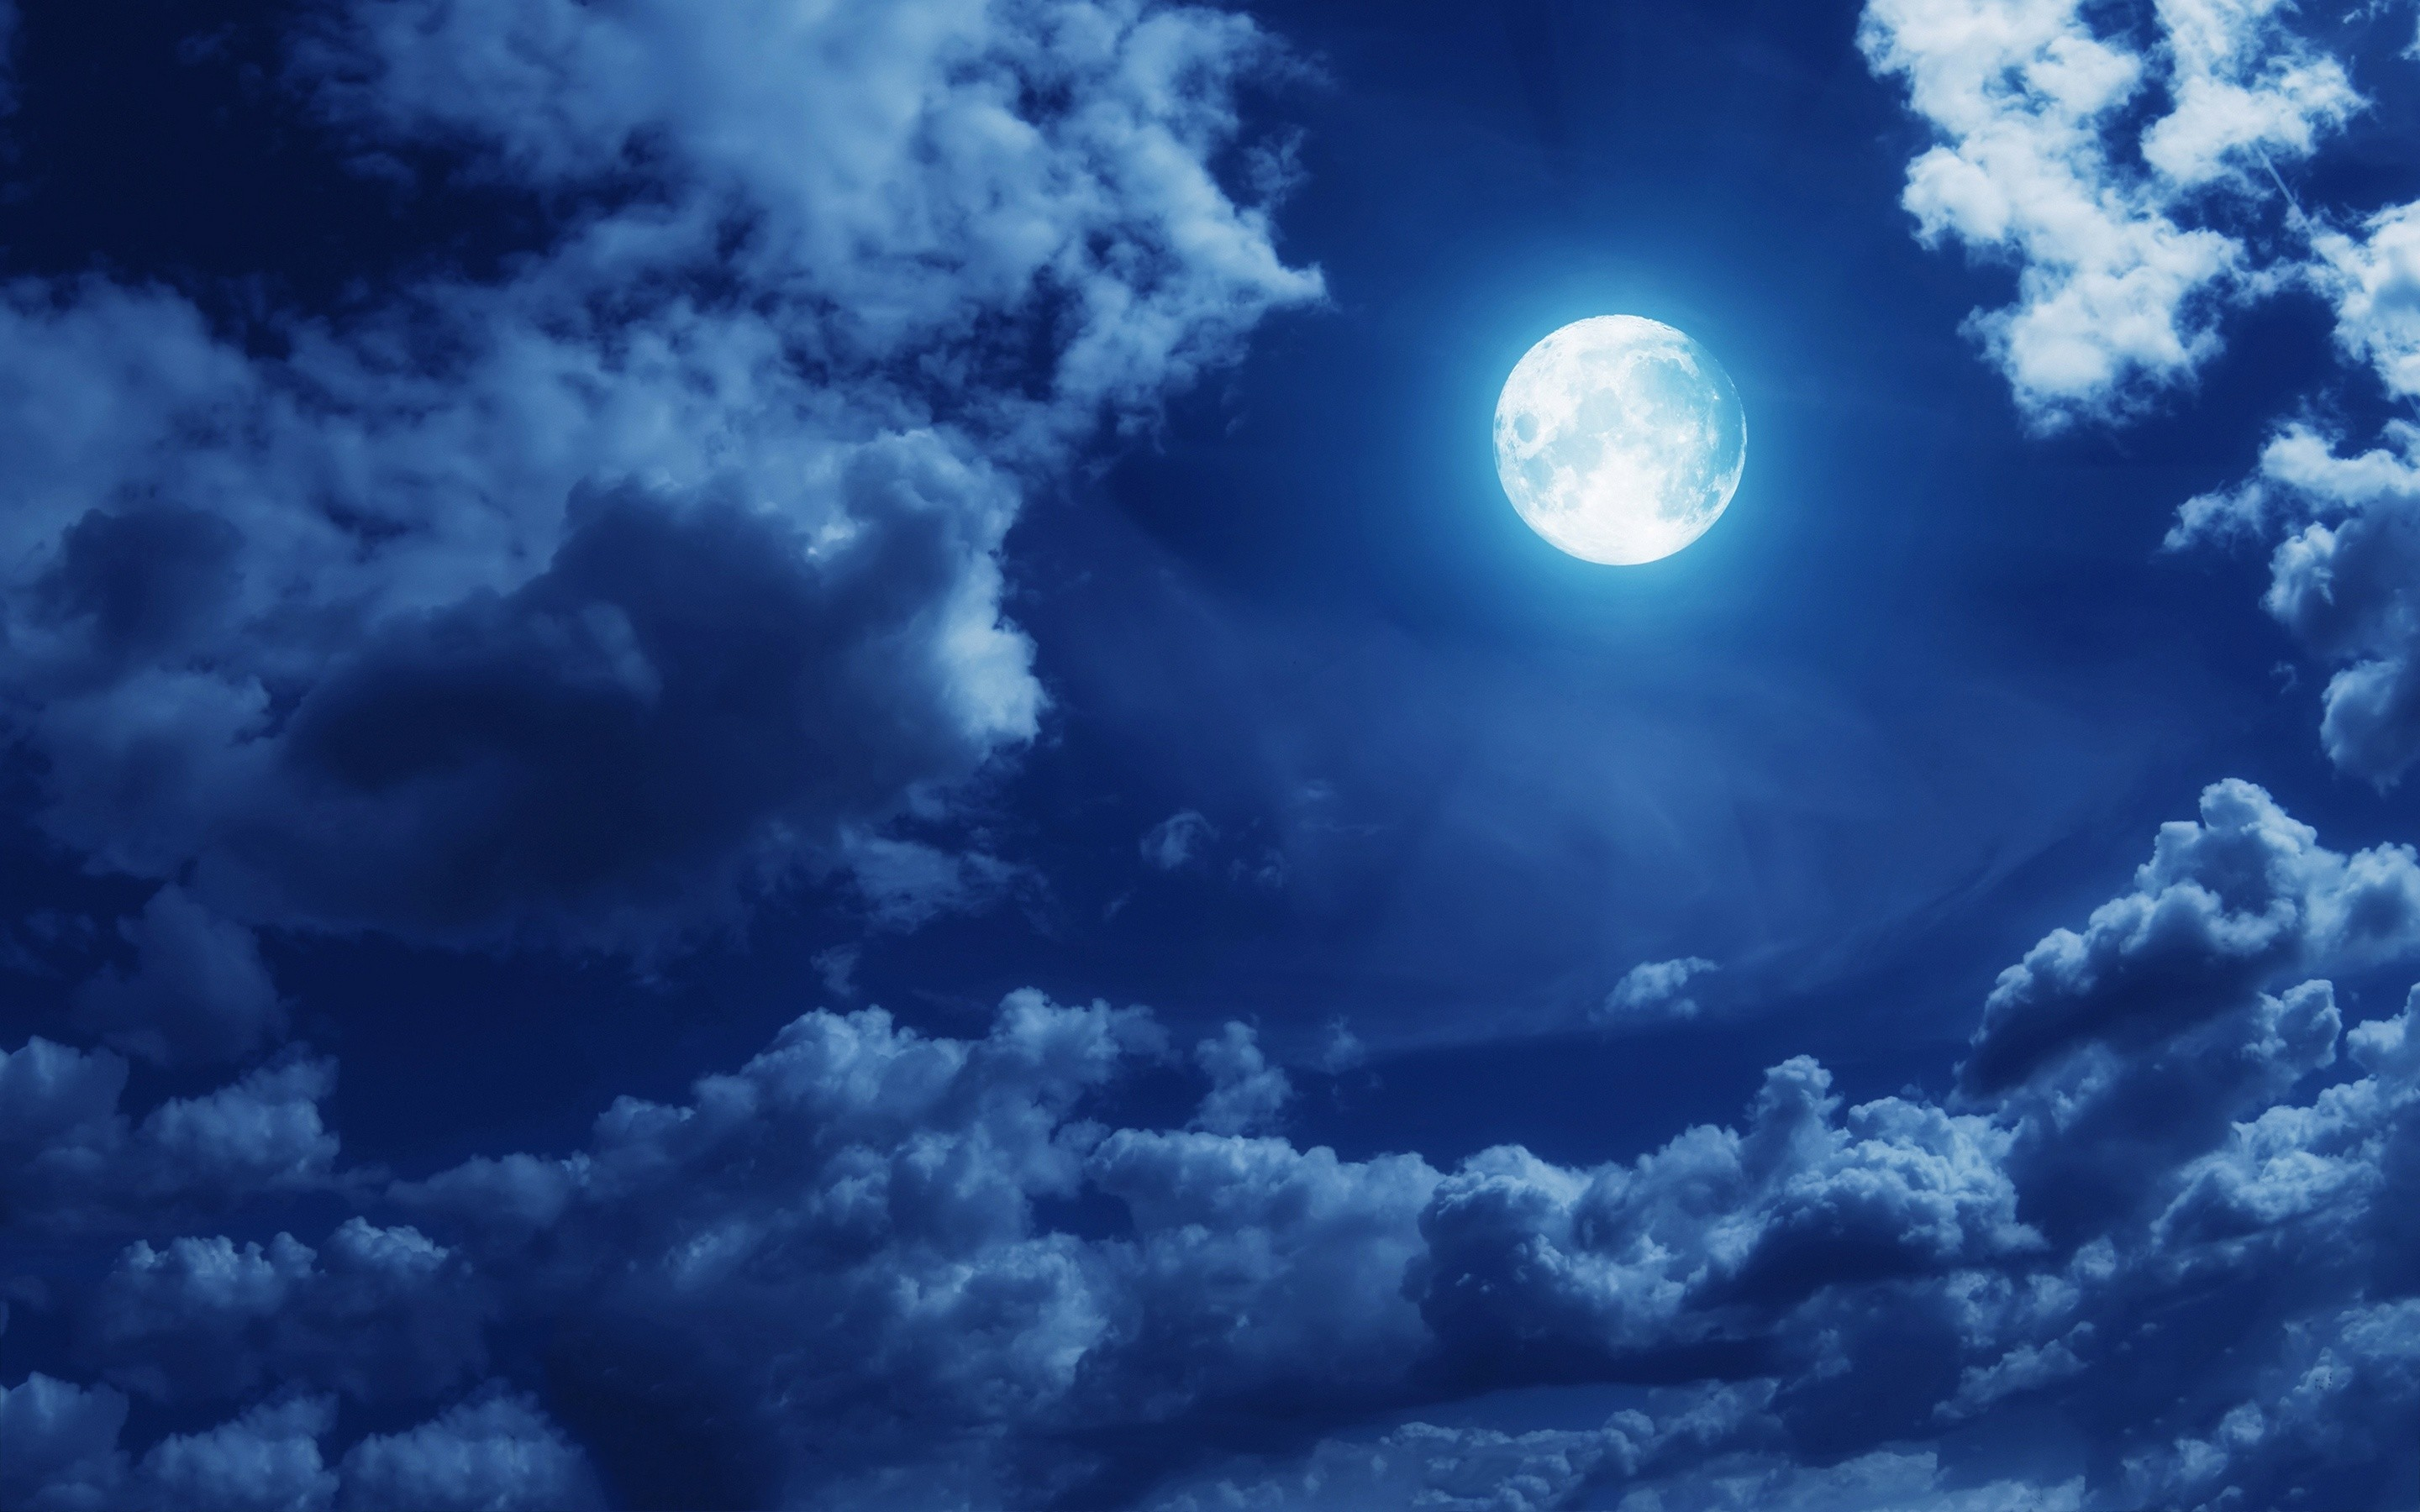 Res: 2880x1800, Blasphemous Blue Moon Warning Paranormal Activity Forecast - HD Wallpapers